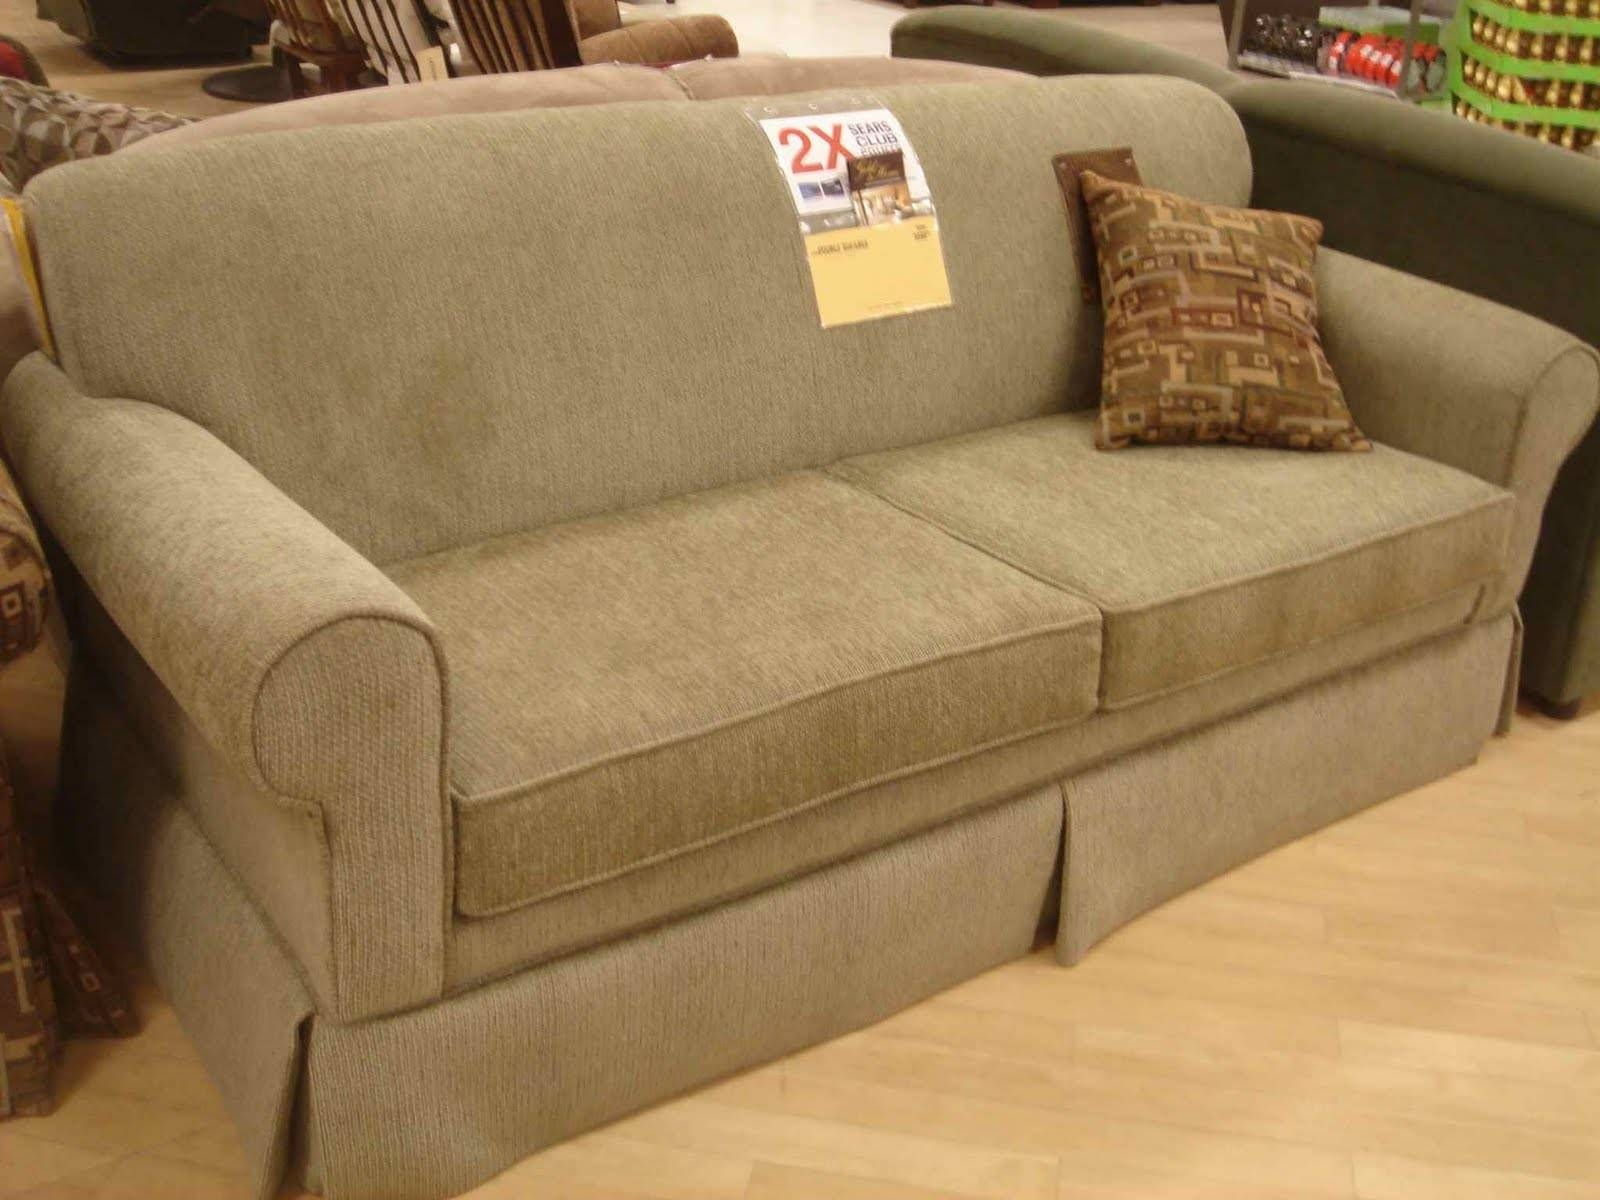 Sears Sofas Canada | Tehranmix Decoration pertaining to Sears Sofa (Image 19 of 25)